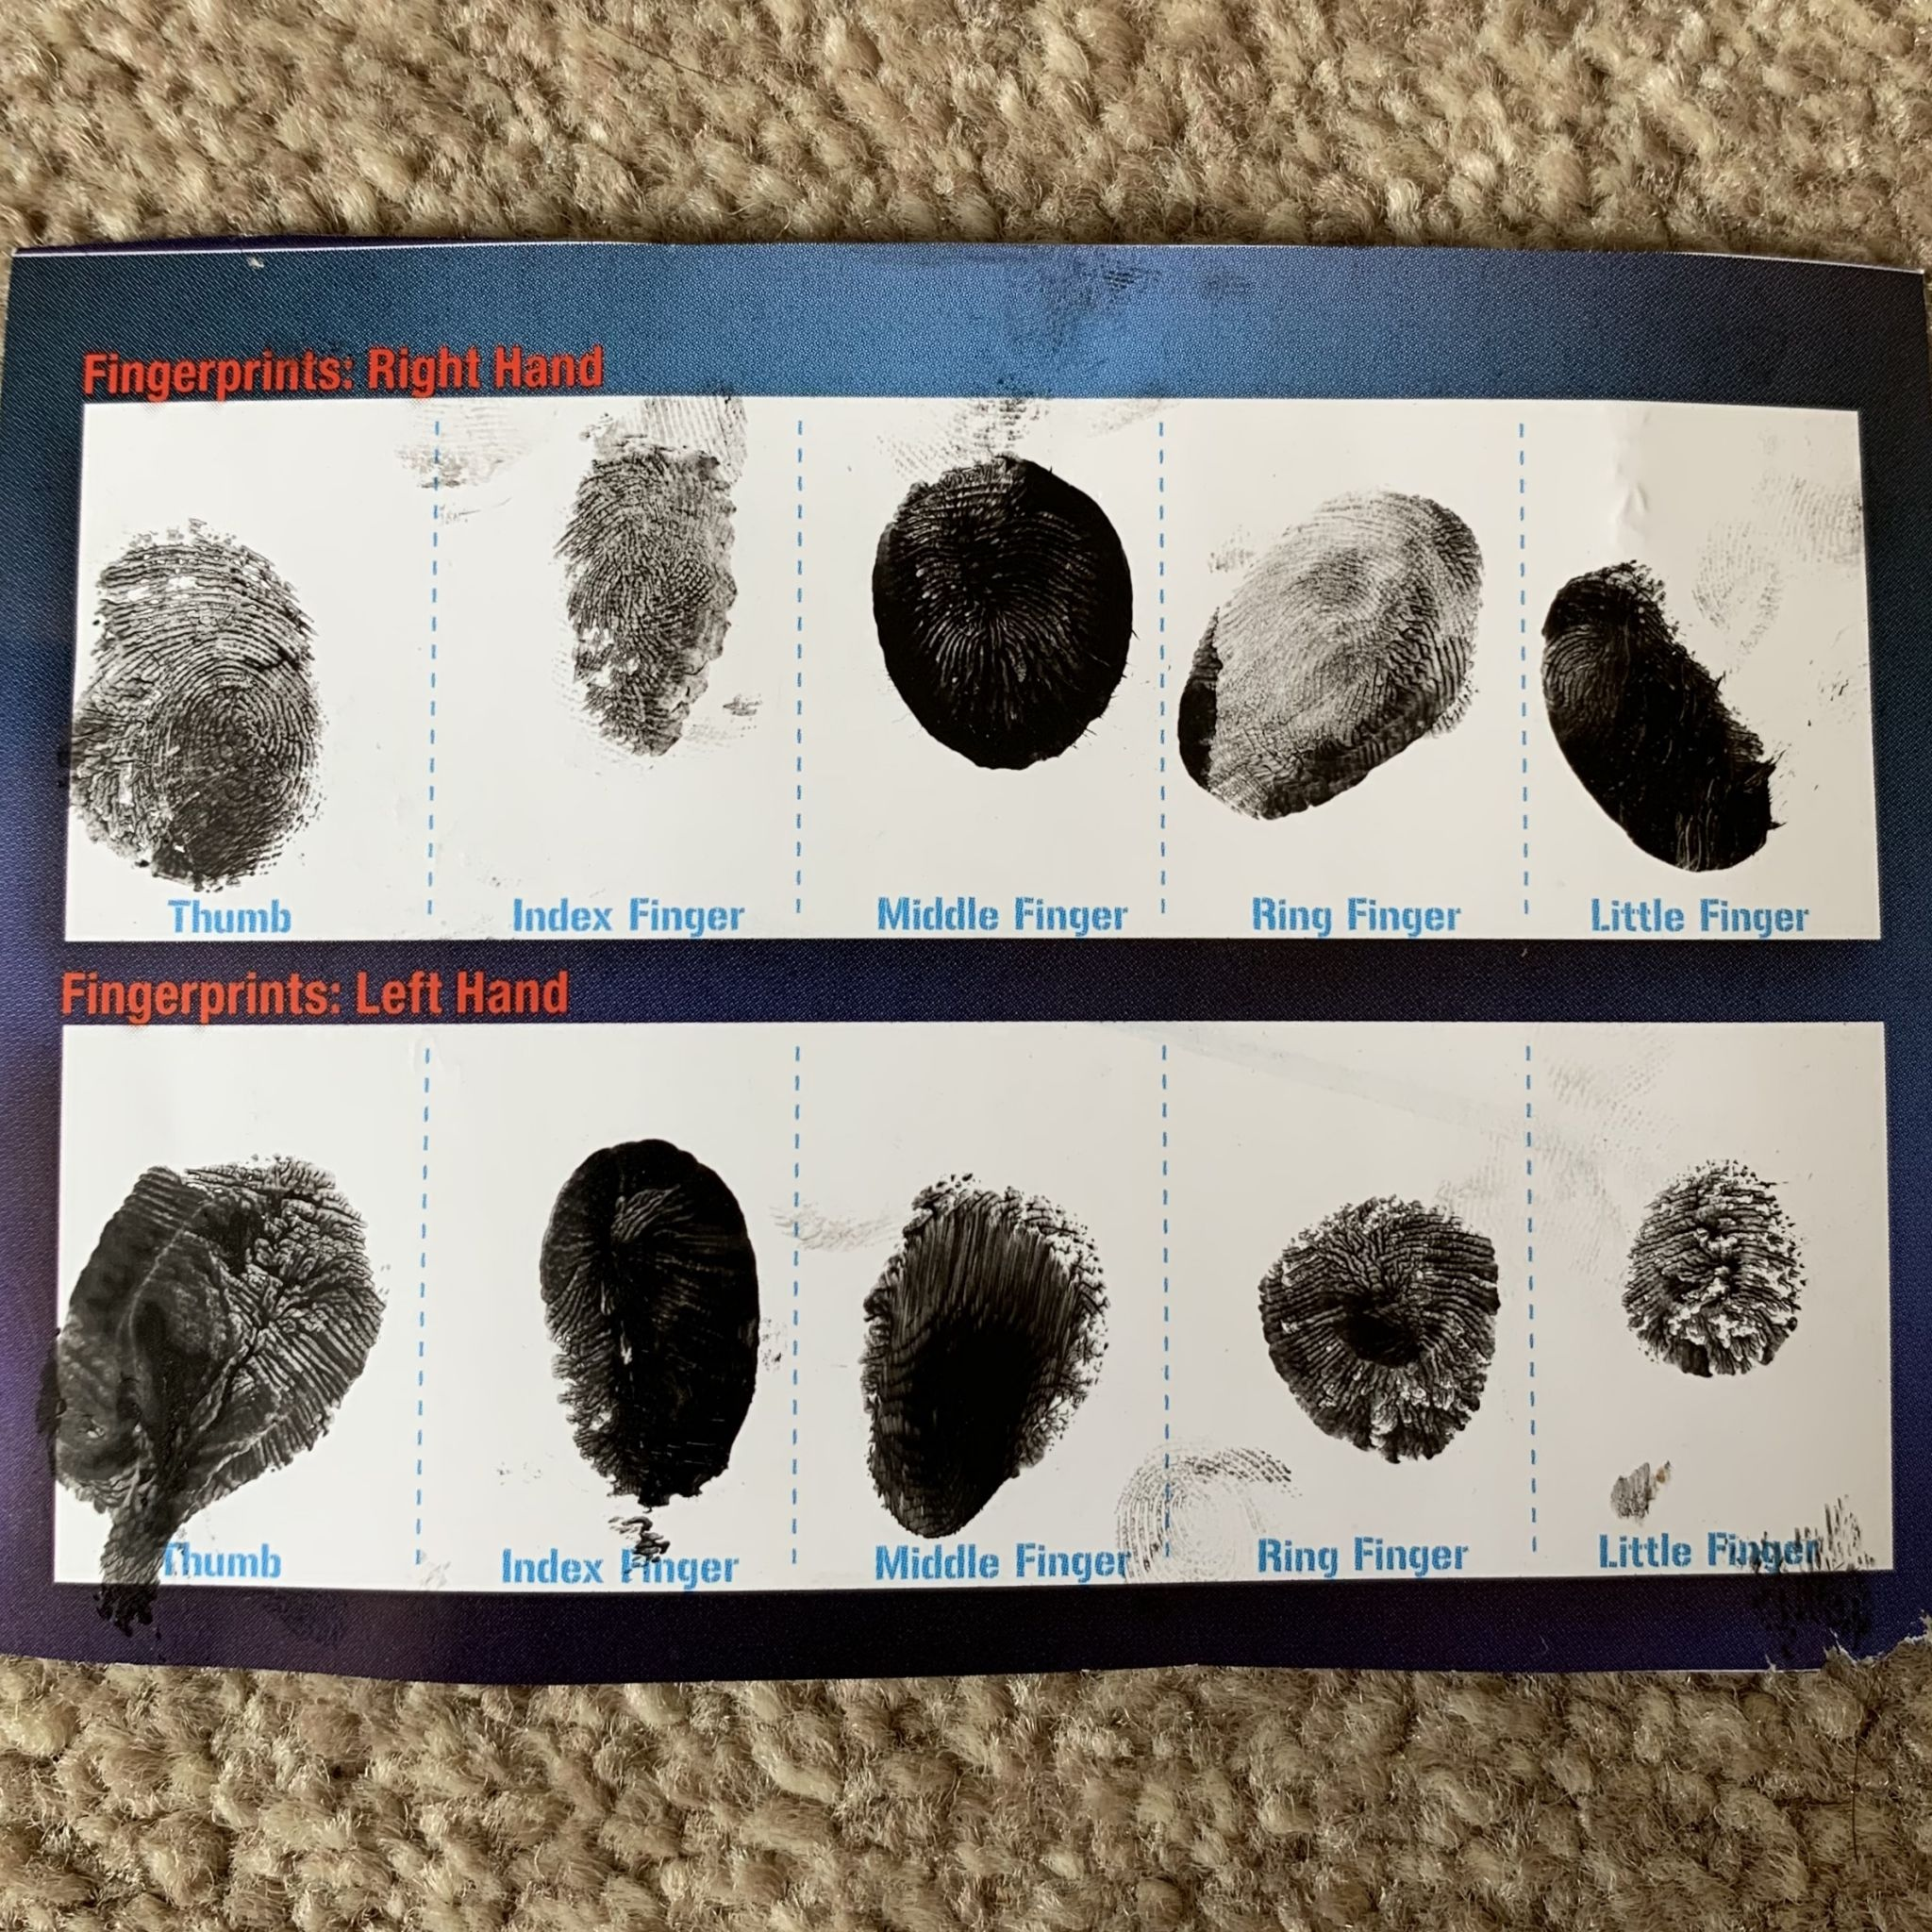 fingerprints on a card